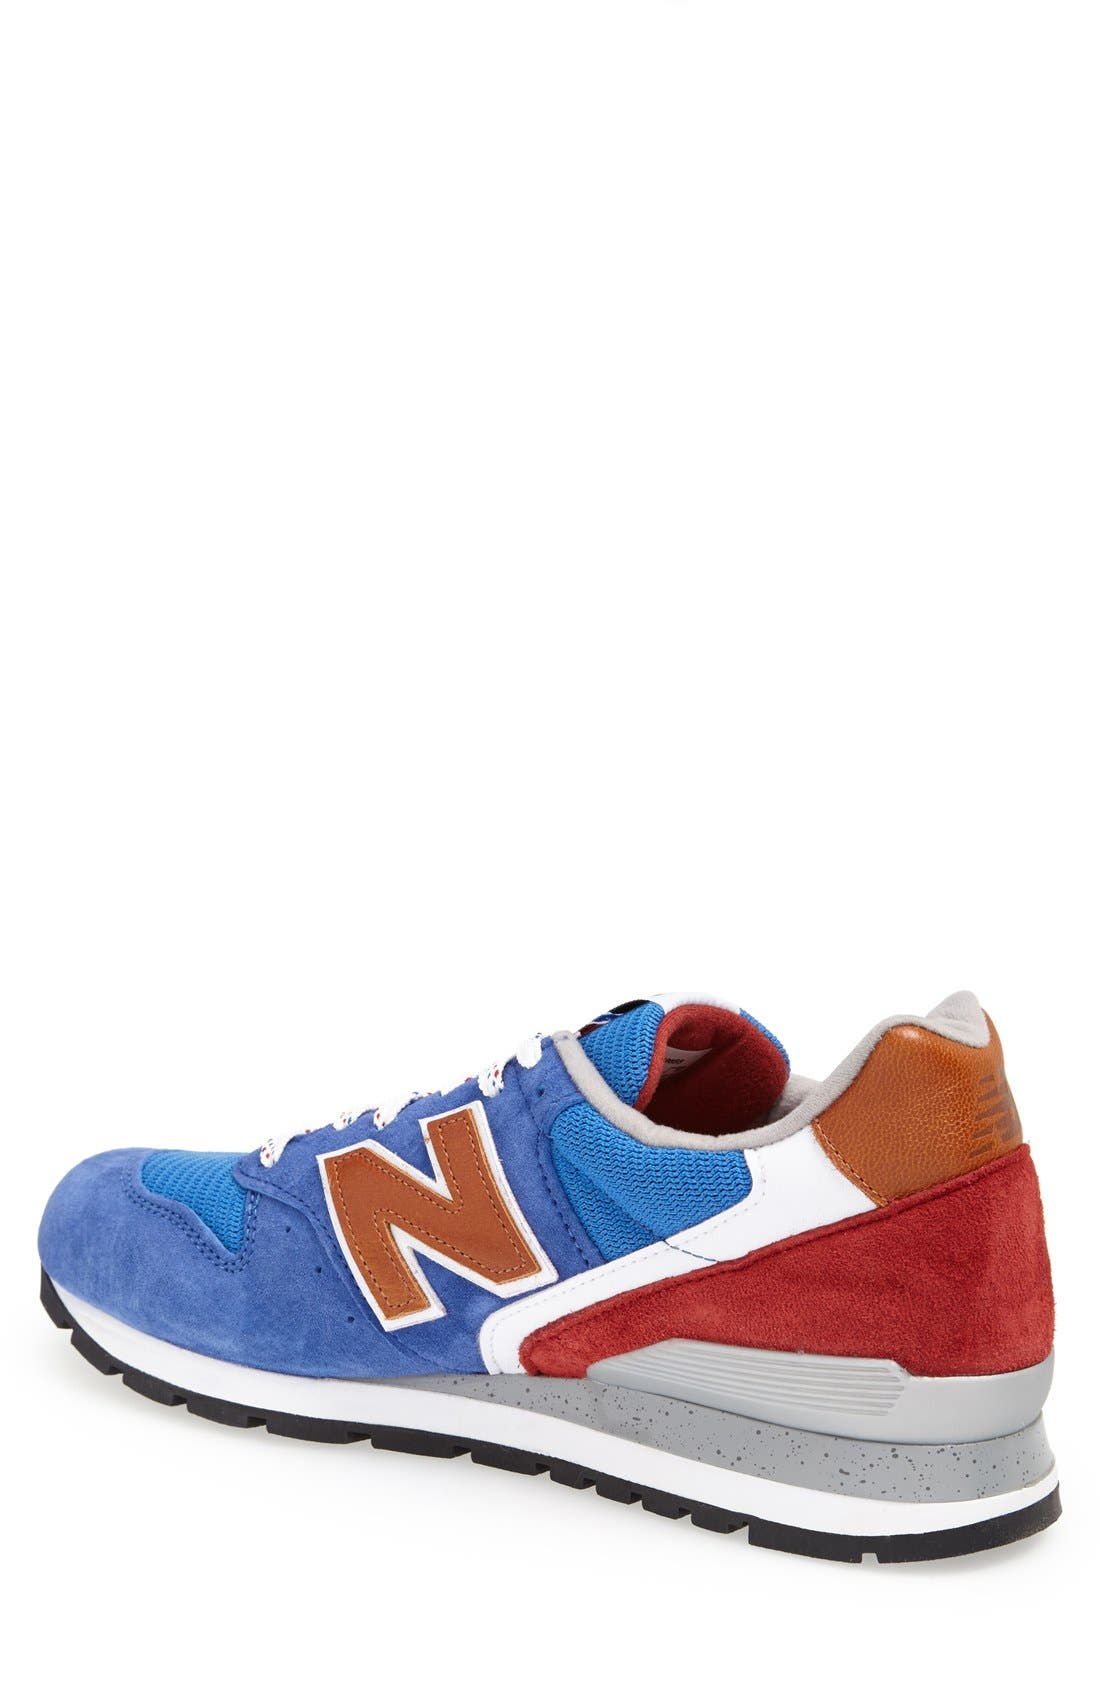 '996' Sneaker,                             Alternate thumbnail 2, color,                             Blue/Red